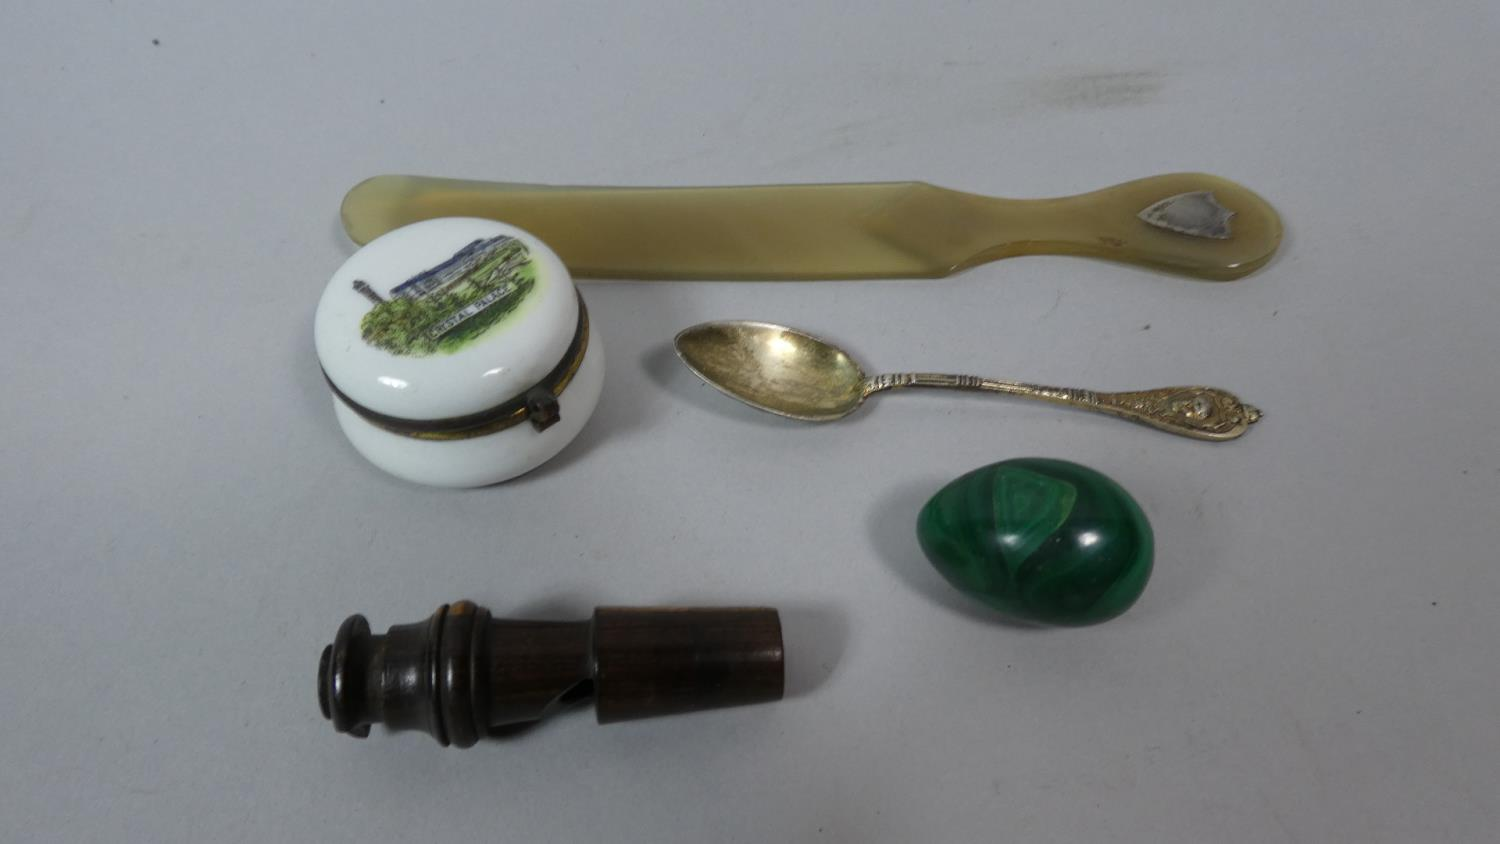 Lot 119 - A Small Collection of Curios to Include Whistle, Malachite Egg, Horn Page Turner with Silver